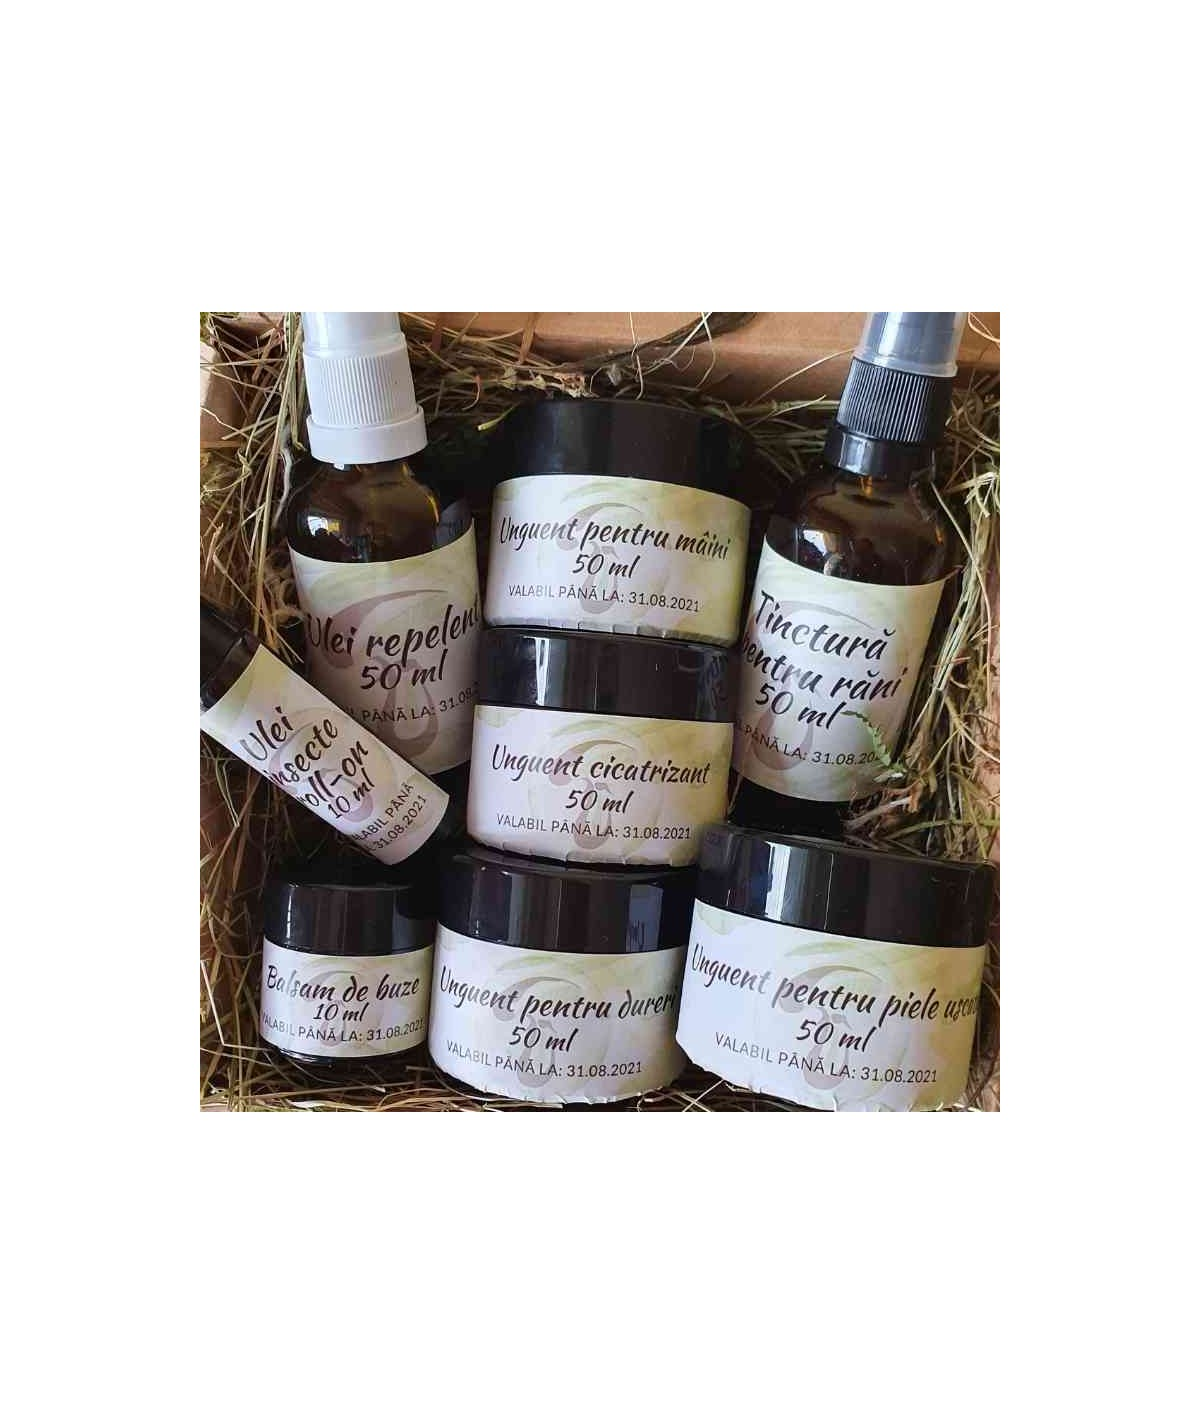 Kit complet cosmetice naturale